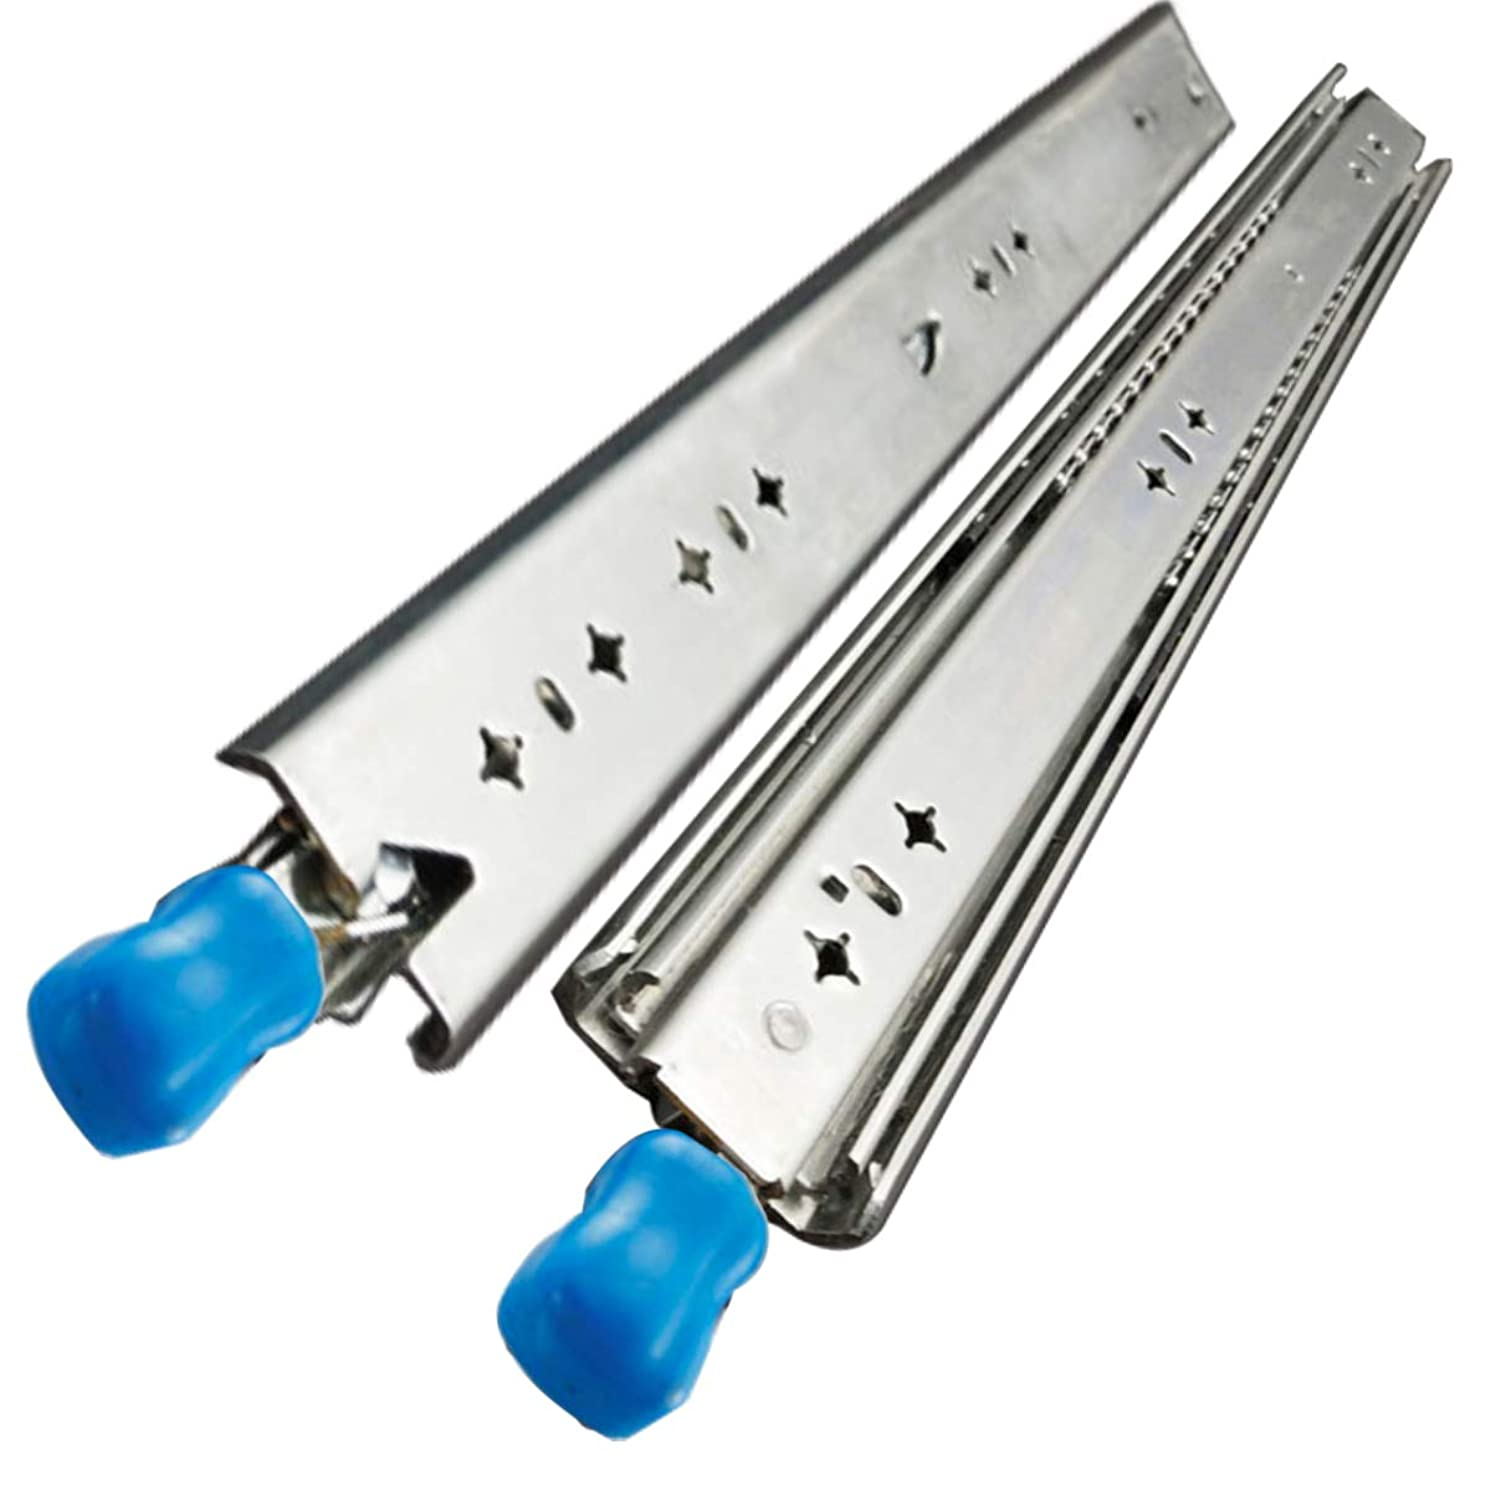 VADANIA Heavy Duty Drawer Slides, 32 Inch with Lock, Full Extension Ball Bearing, 1-Pair